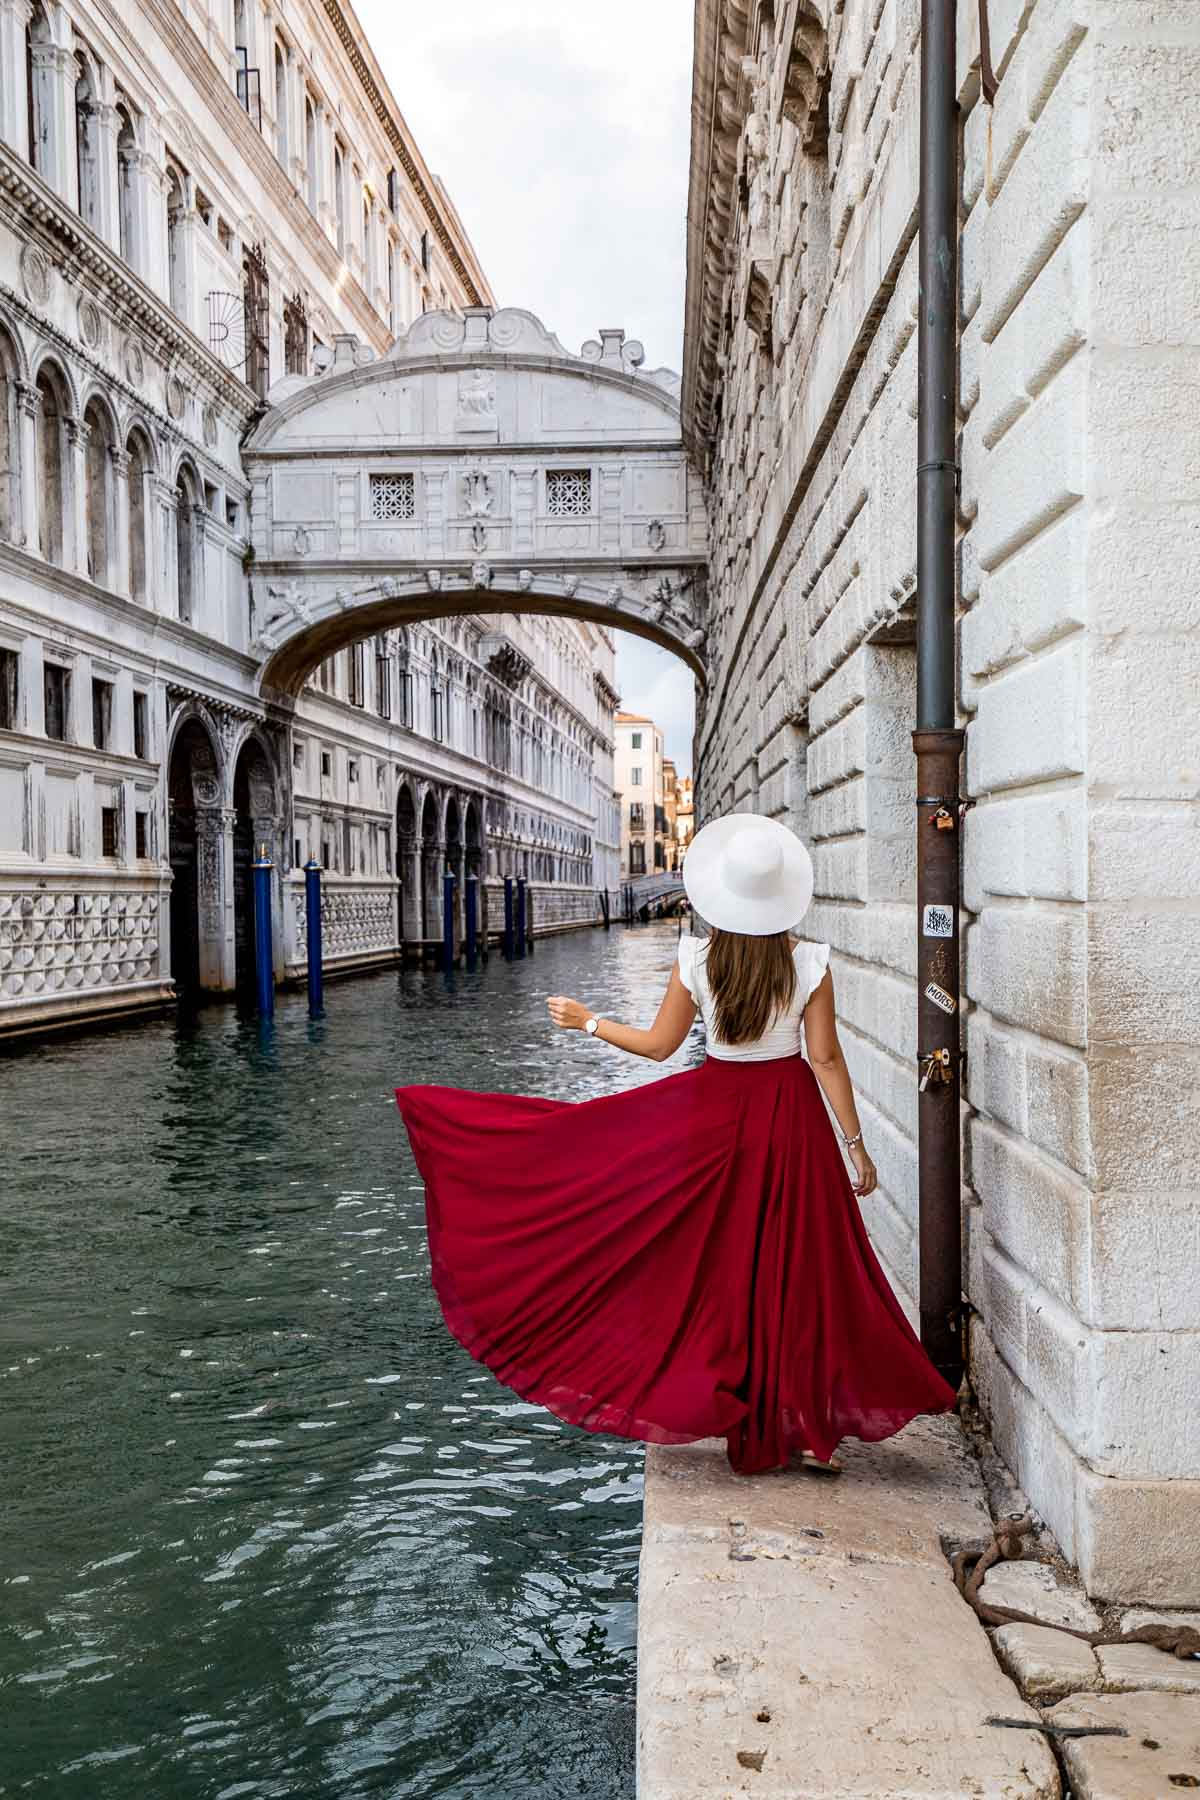 Girl in a red skirt standing below the Bridge of Sighs in Venice, Italy